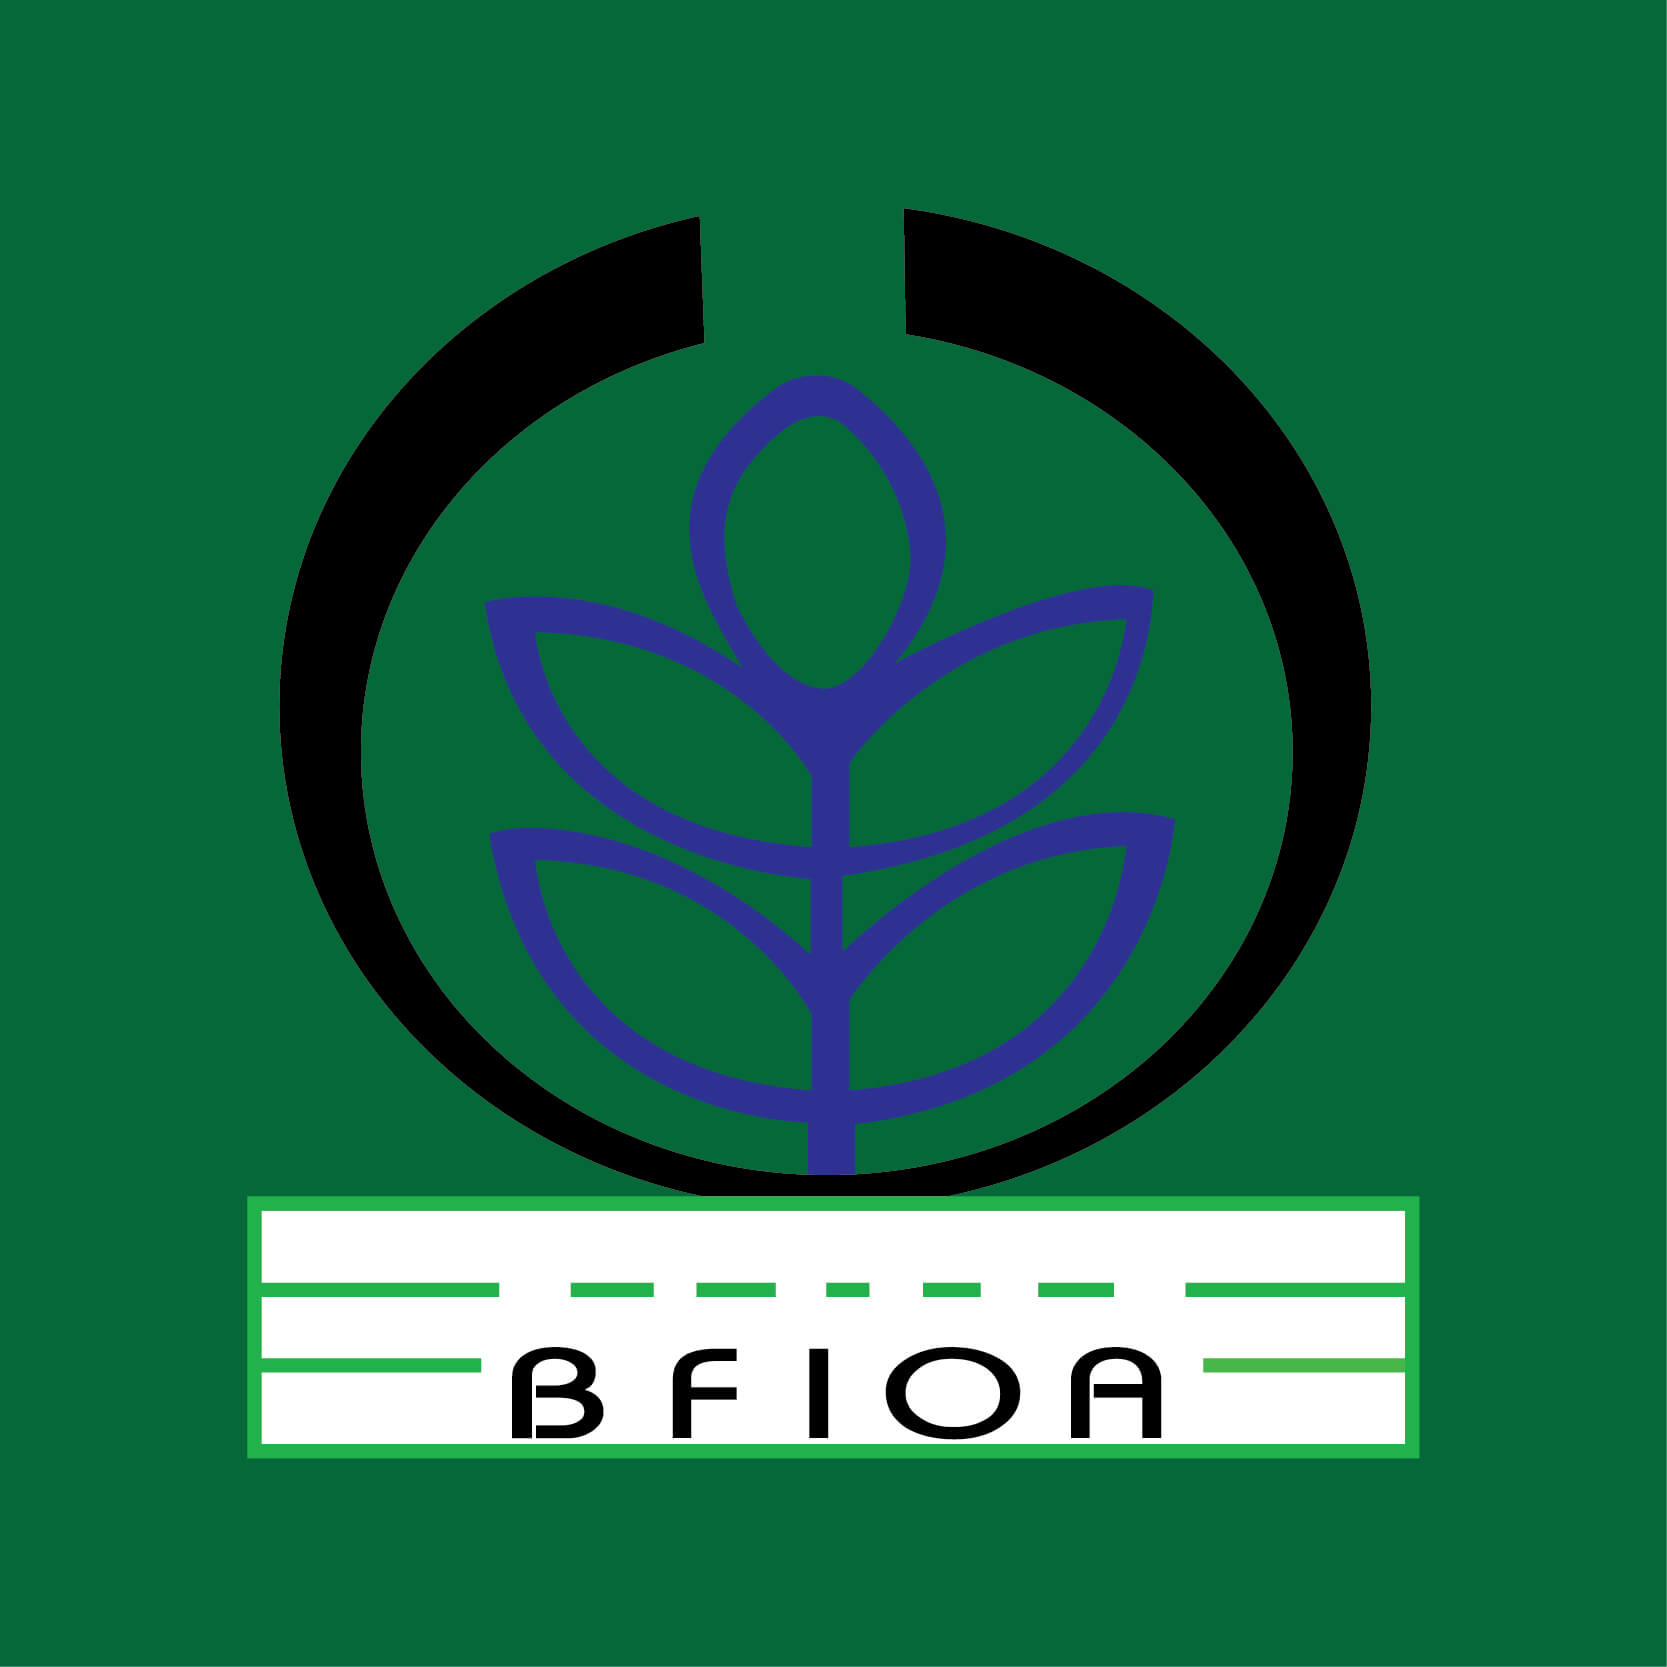 DTC-Clients-Served-Logo-BFIOA